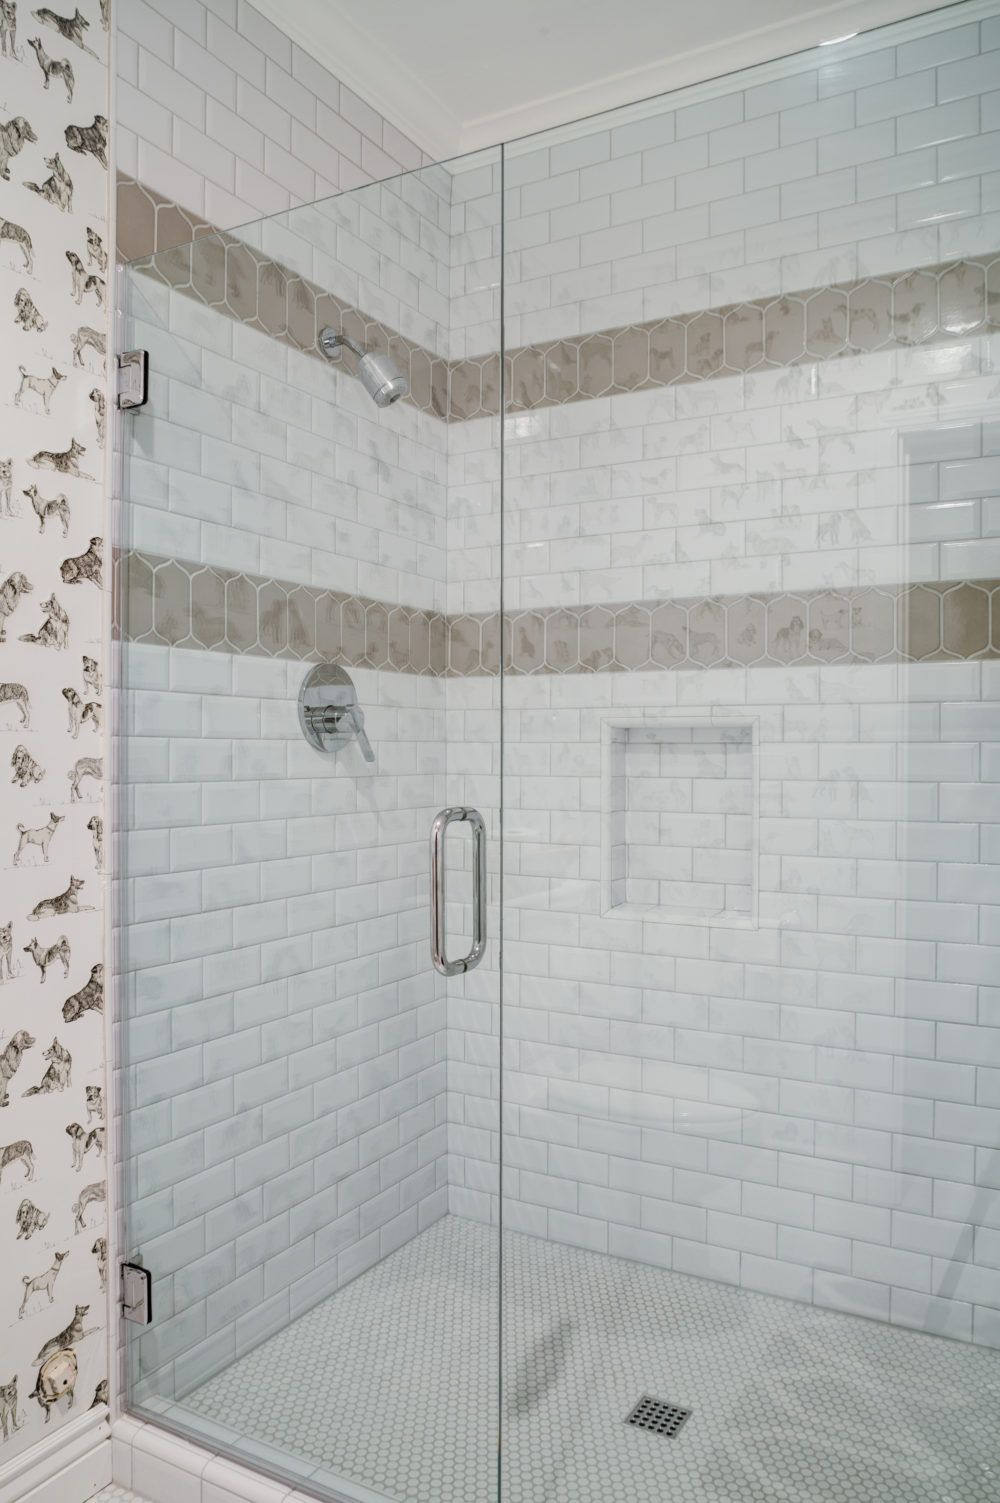 I Like This Design Floor To Ceiling Tile With 2 Accent Strips 1 Shelf Area White Subway Tile Shower Shower Accent Tile Bathtub Tile